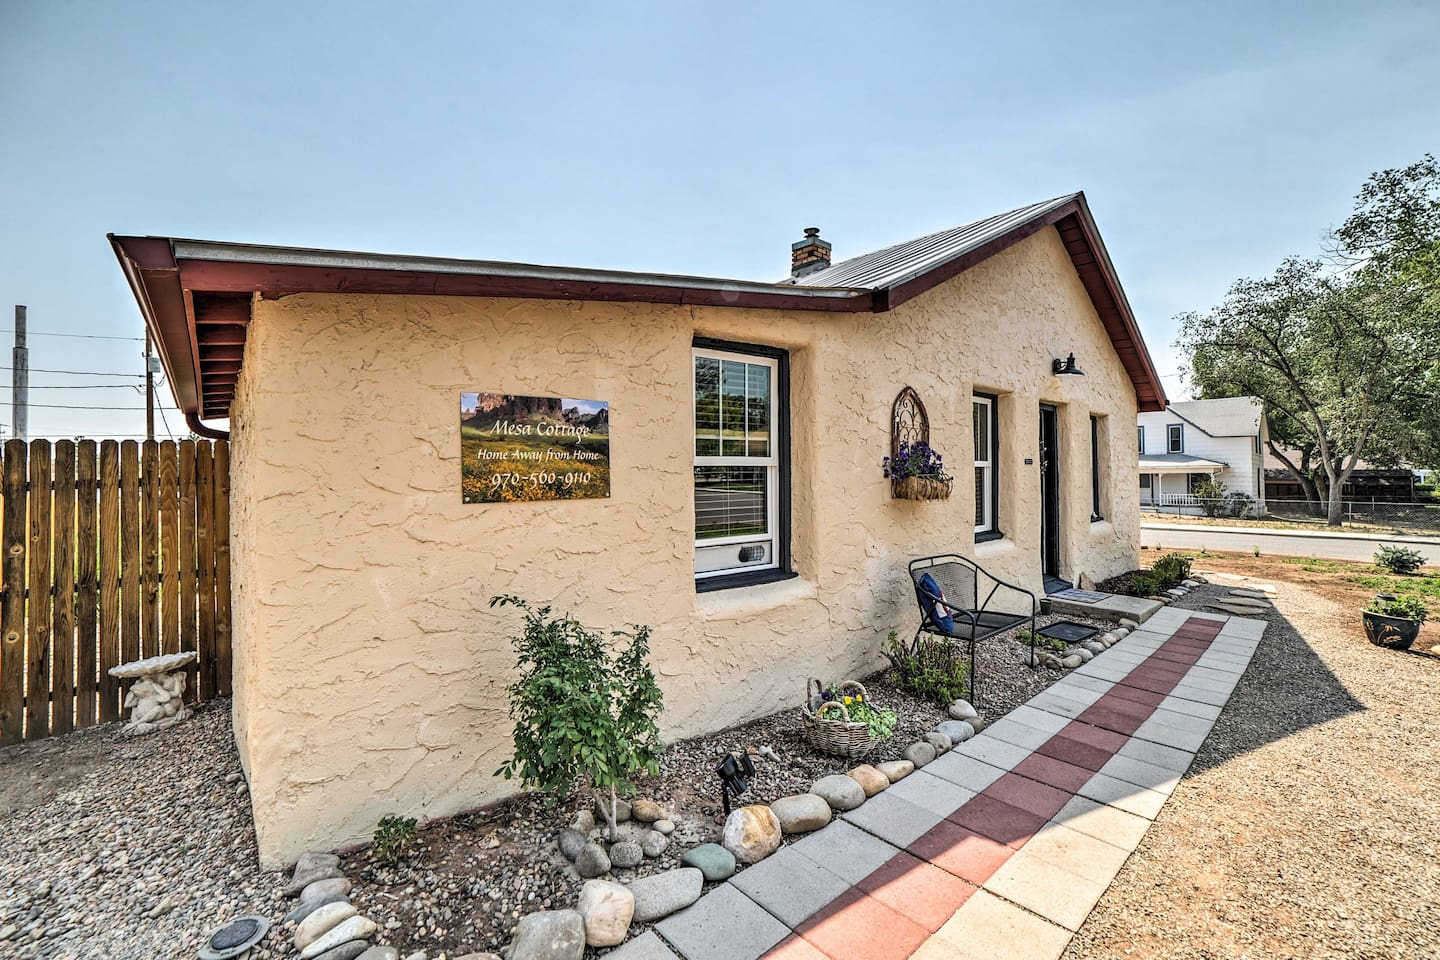 Escape to Mesa Cottage, with picturesque mountain views nestled in a quiet town.